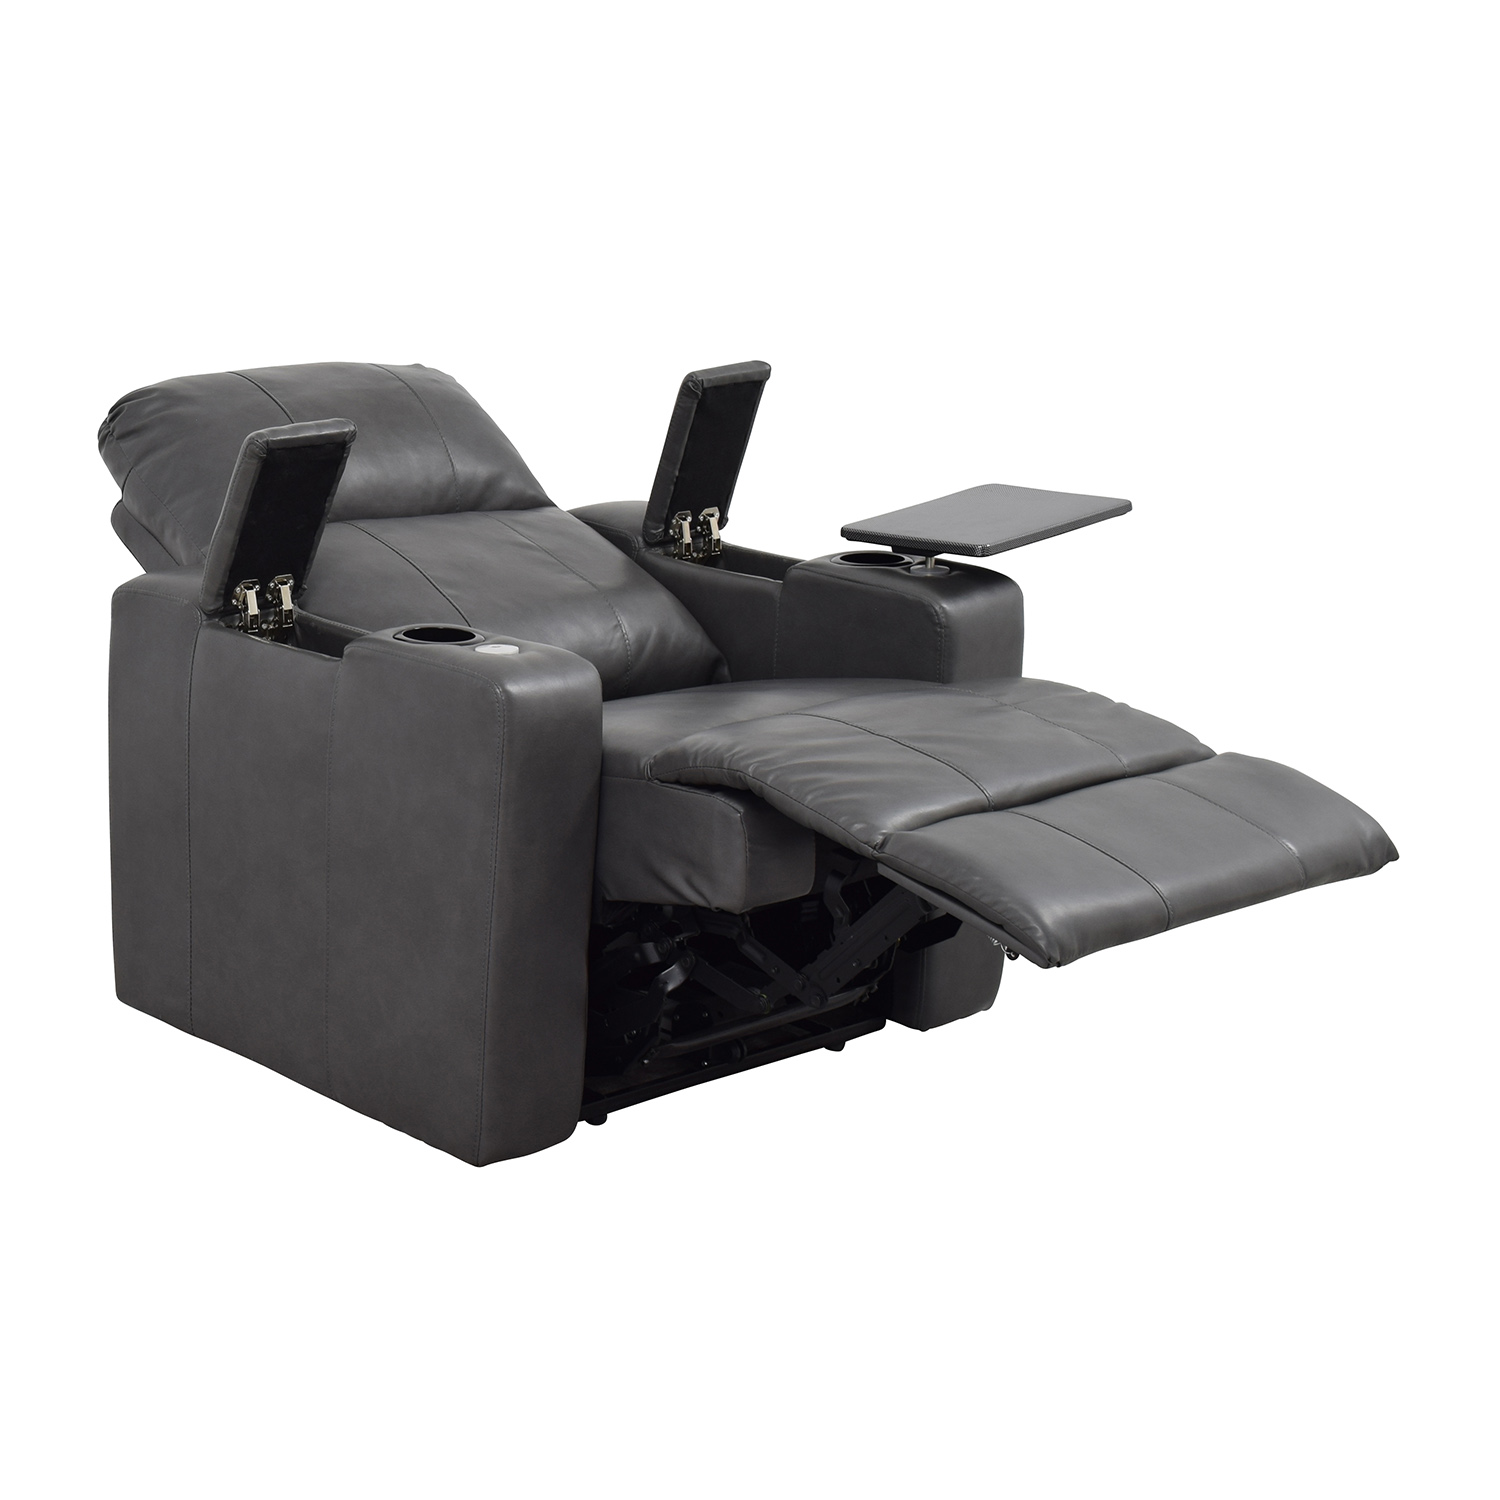 ... Grey Leather Recliner With Storage And USB Port Coupon ...